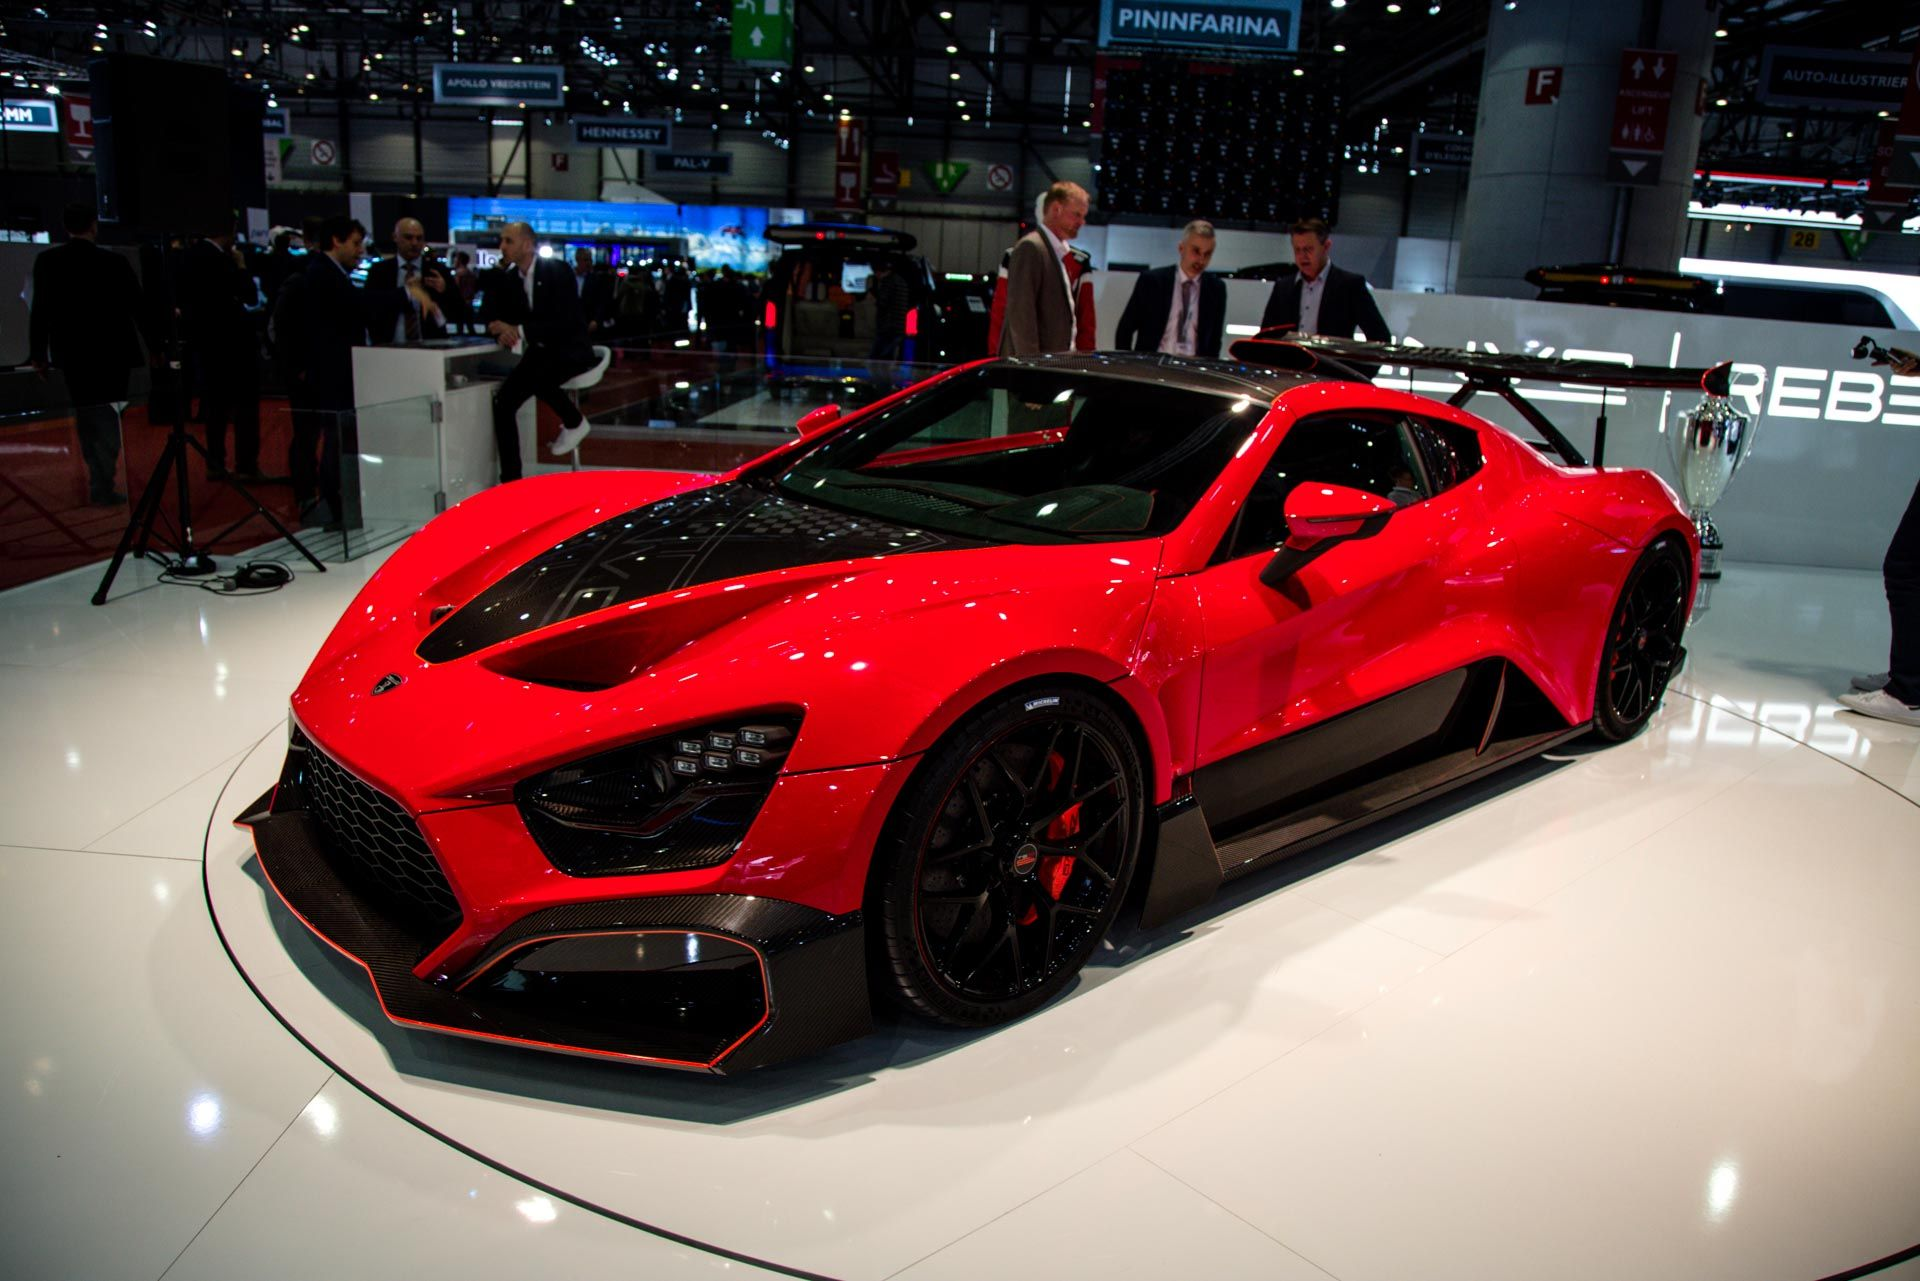 Zenvo Tsr S A Street Legal Version Of The Tsr Track Car Announced Last Year Super Luxury Cars Sports Cars Luxury Dream Cars